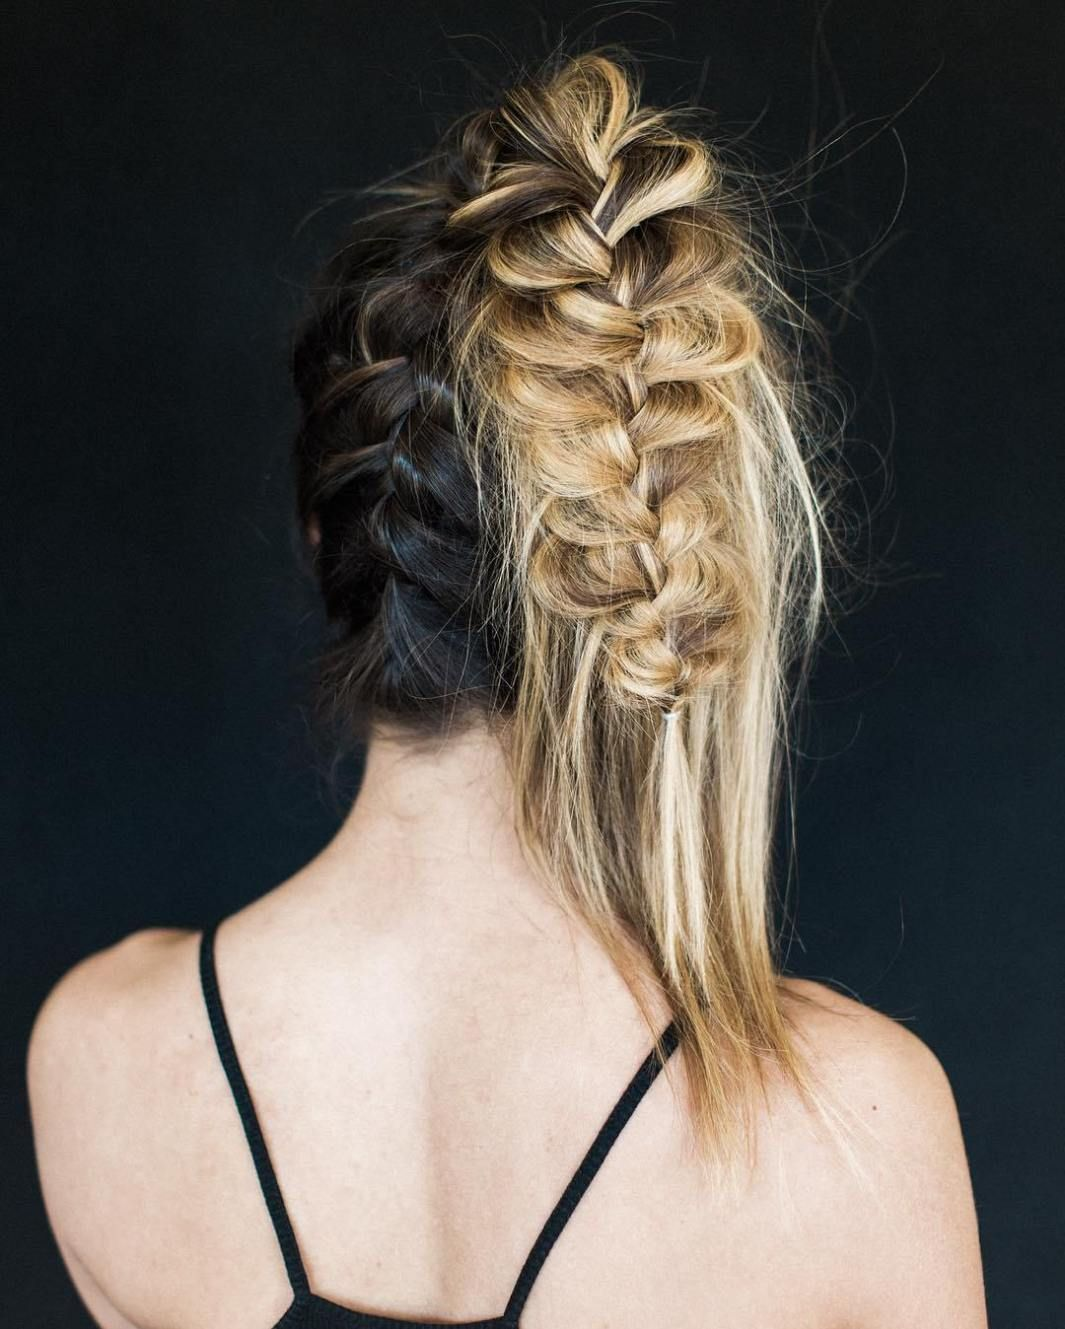 38 Perfectly Imperfect Messy Hairstyles for All Lengths   Messy braided  hairstyles, Messy hairstyles, French braid hairstyles